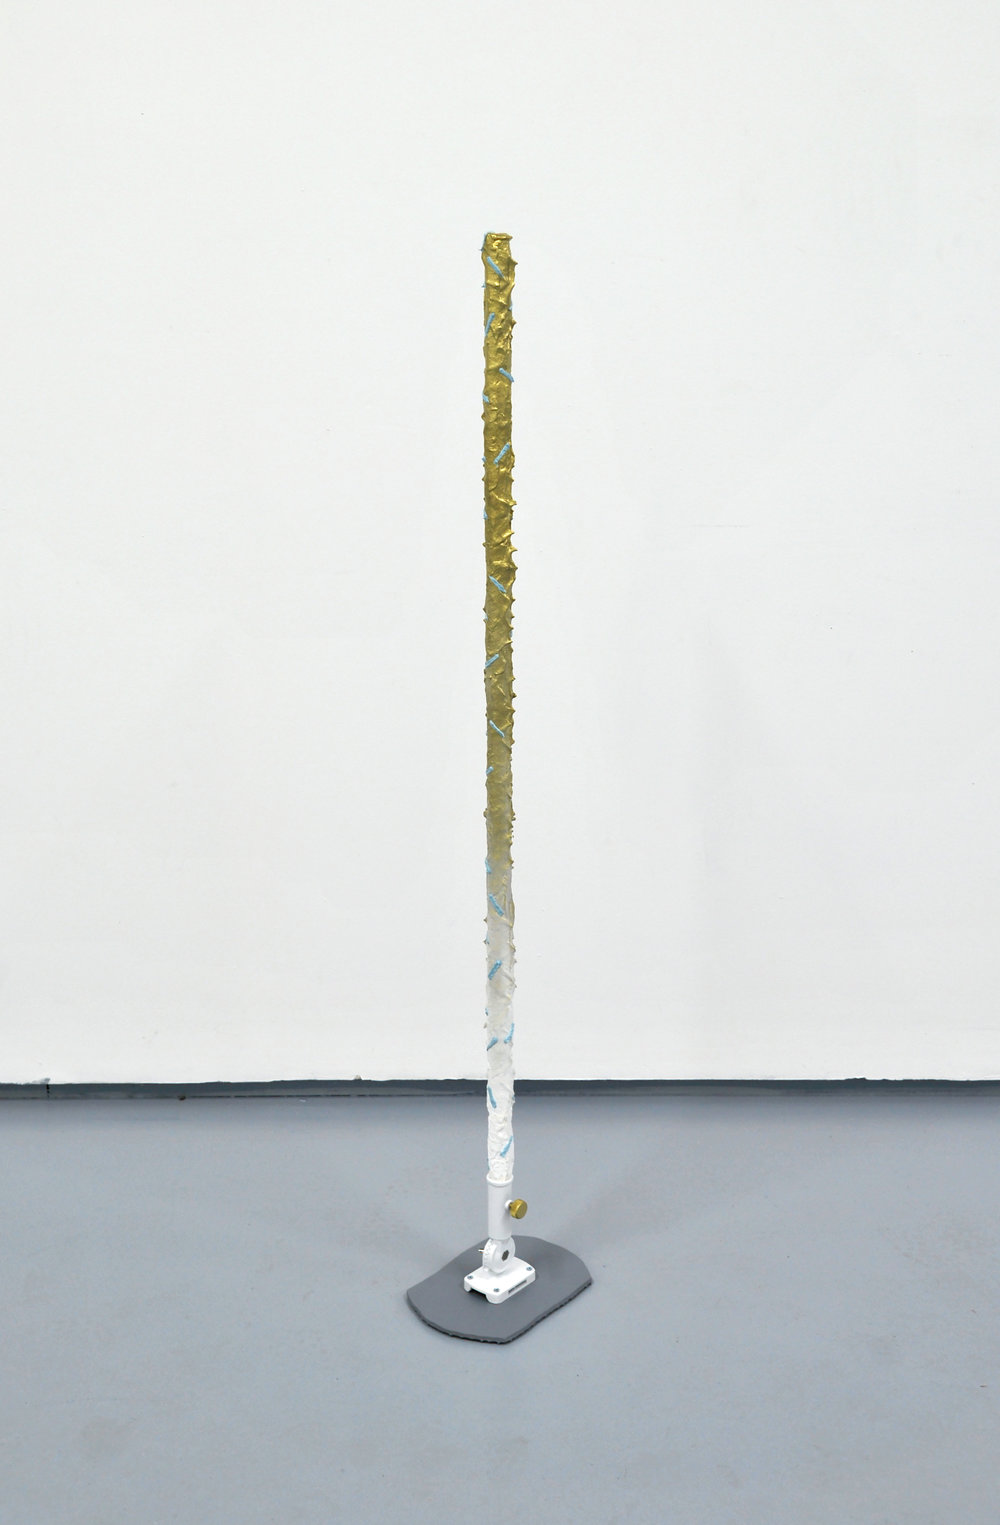 Pole (Gilded Mop)  Acrylic, enamel, sand, primer, wood, metal hardware, MDF  10 x 53 x 7 inches  2014